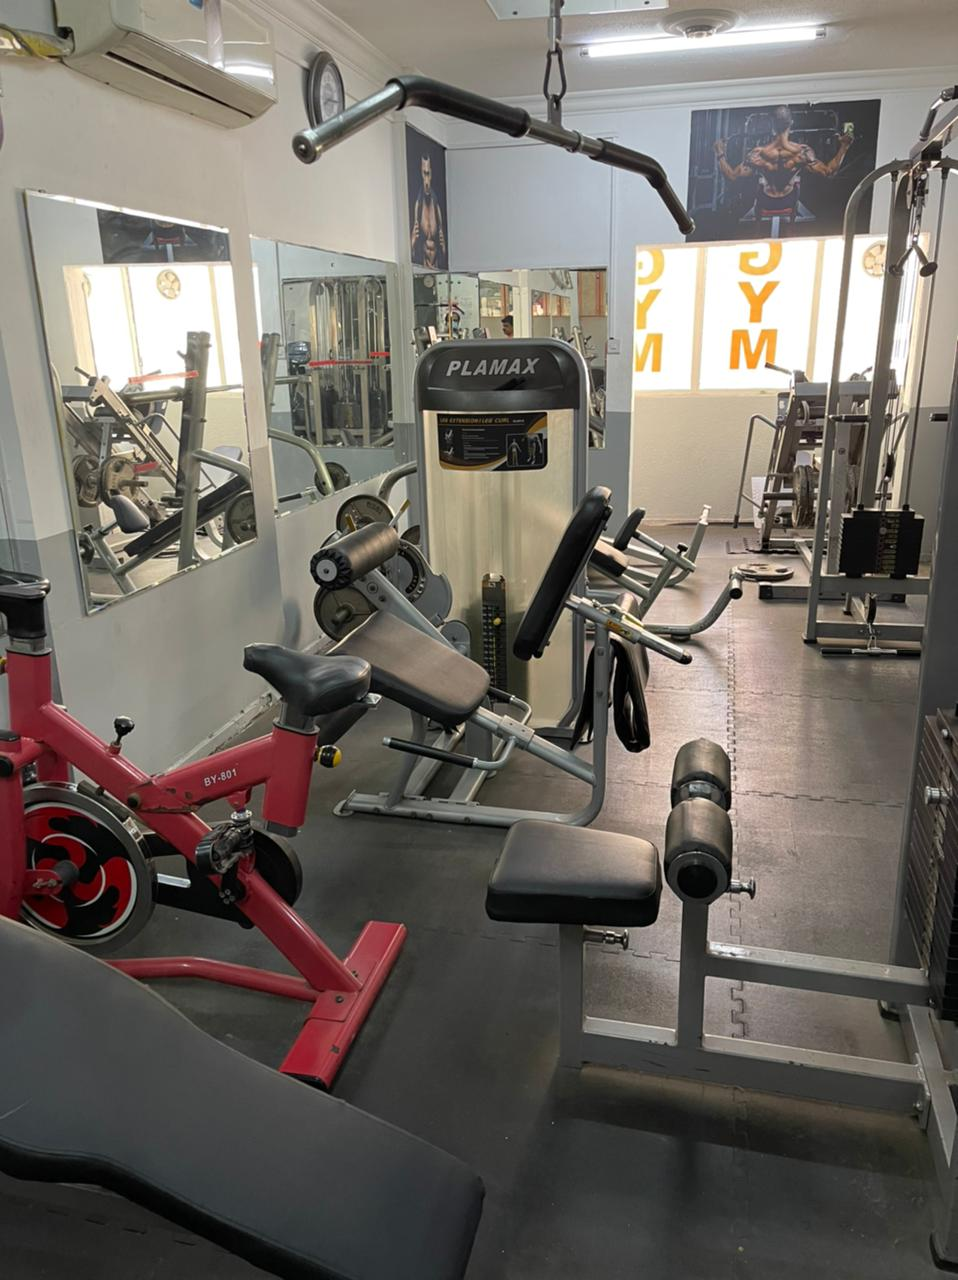 Highly Equipped Gym Is Available For Sale In Major Area Of Sharjah At A Very Reasonable Price